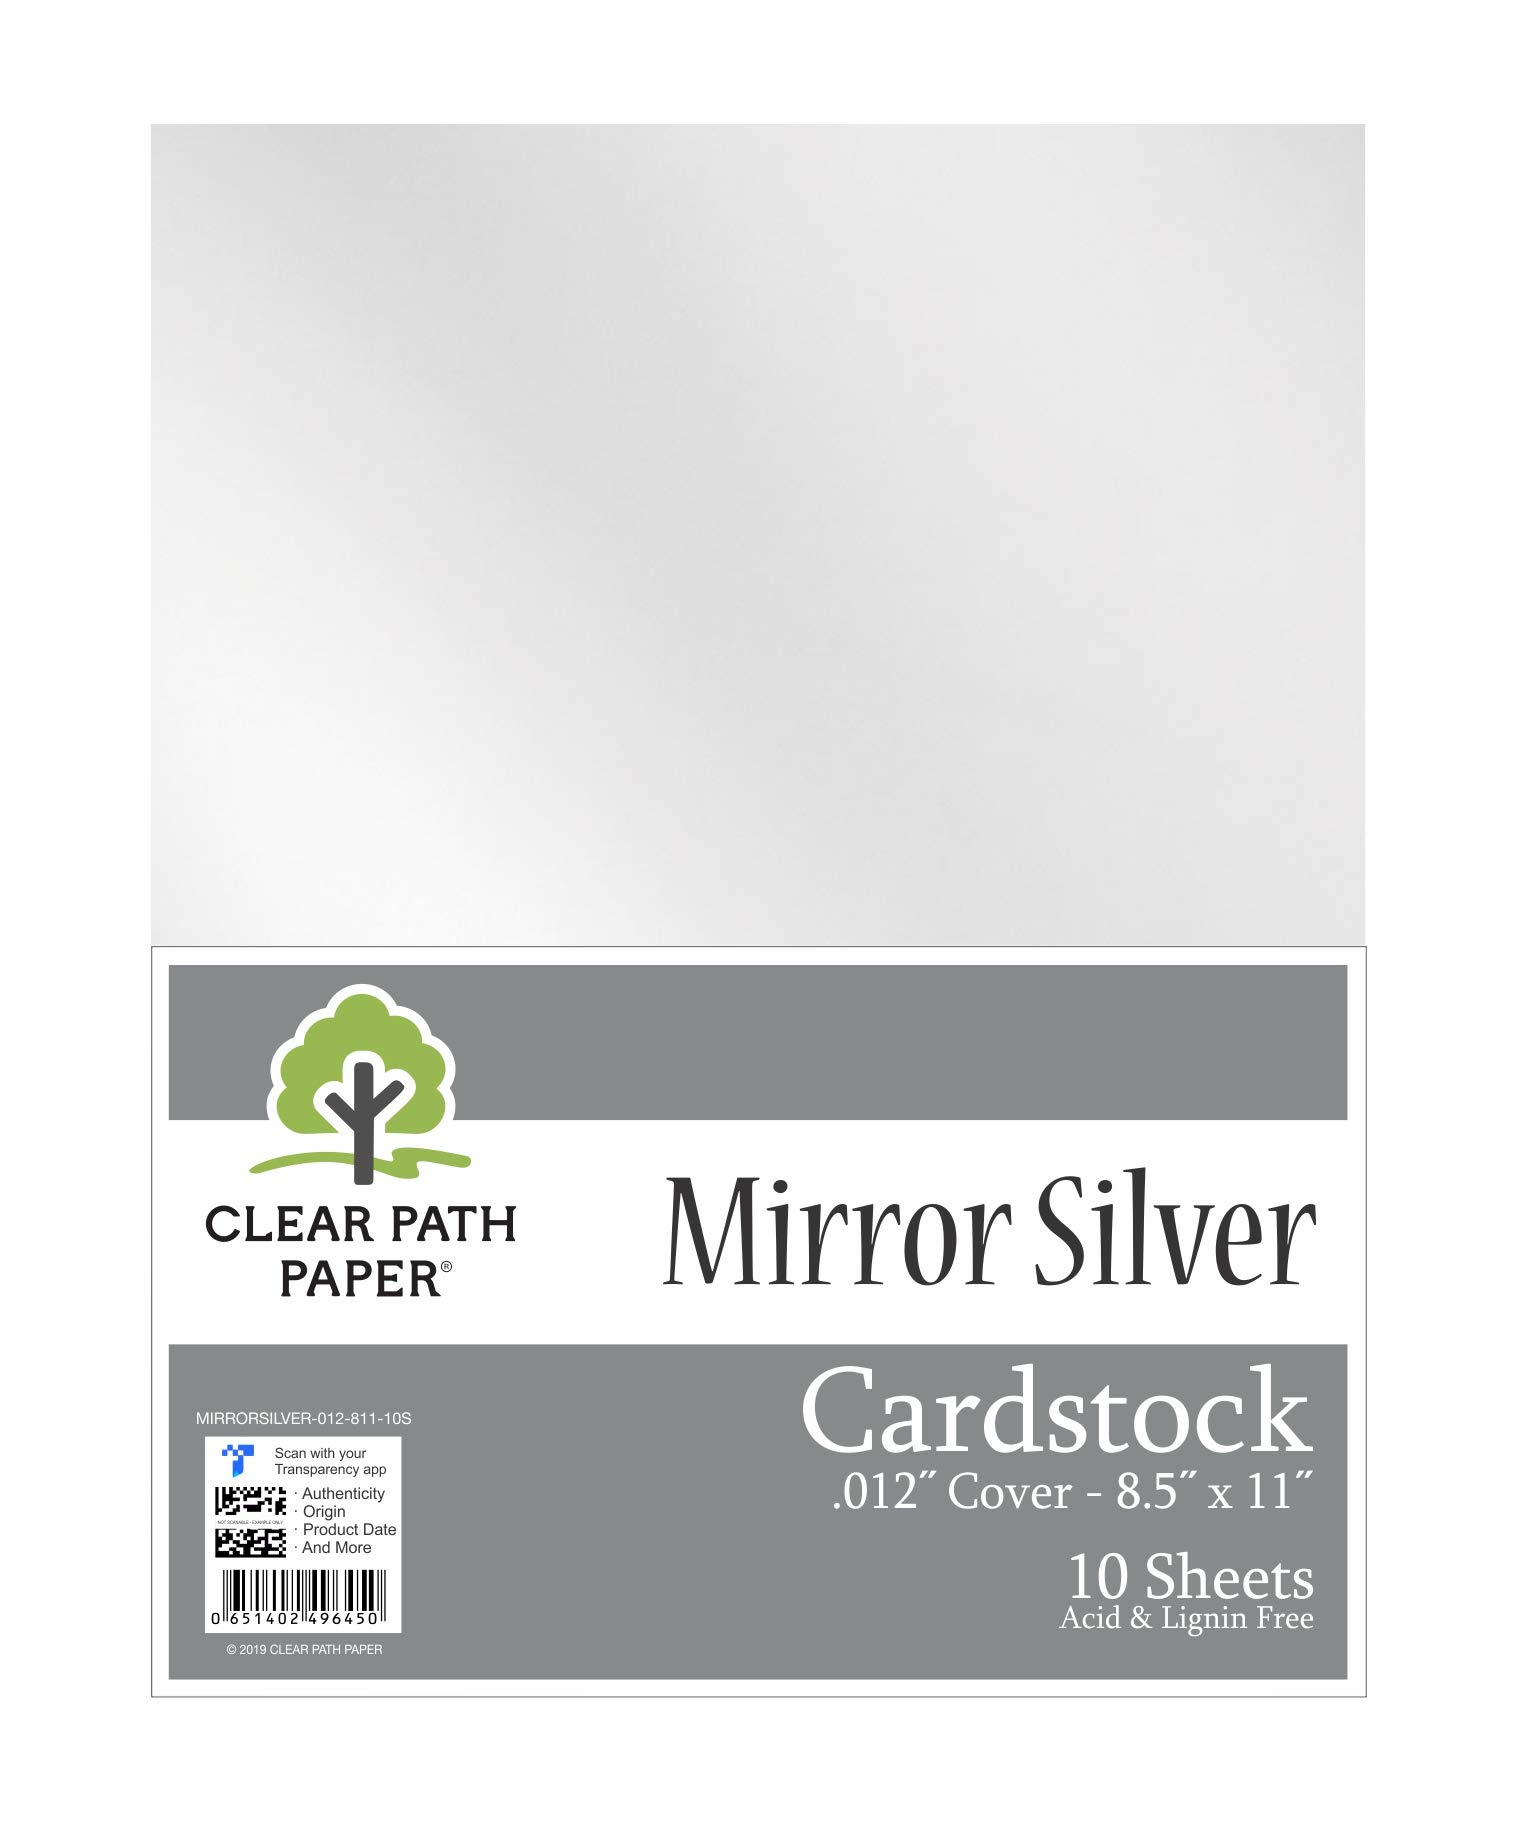 "Mirror Metallic Silver Cardstock - 8.5 x 11 inch - .012"" Thick - 10 Sheets"